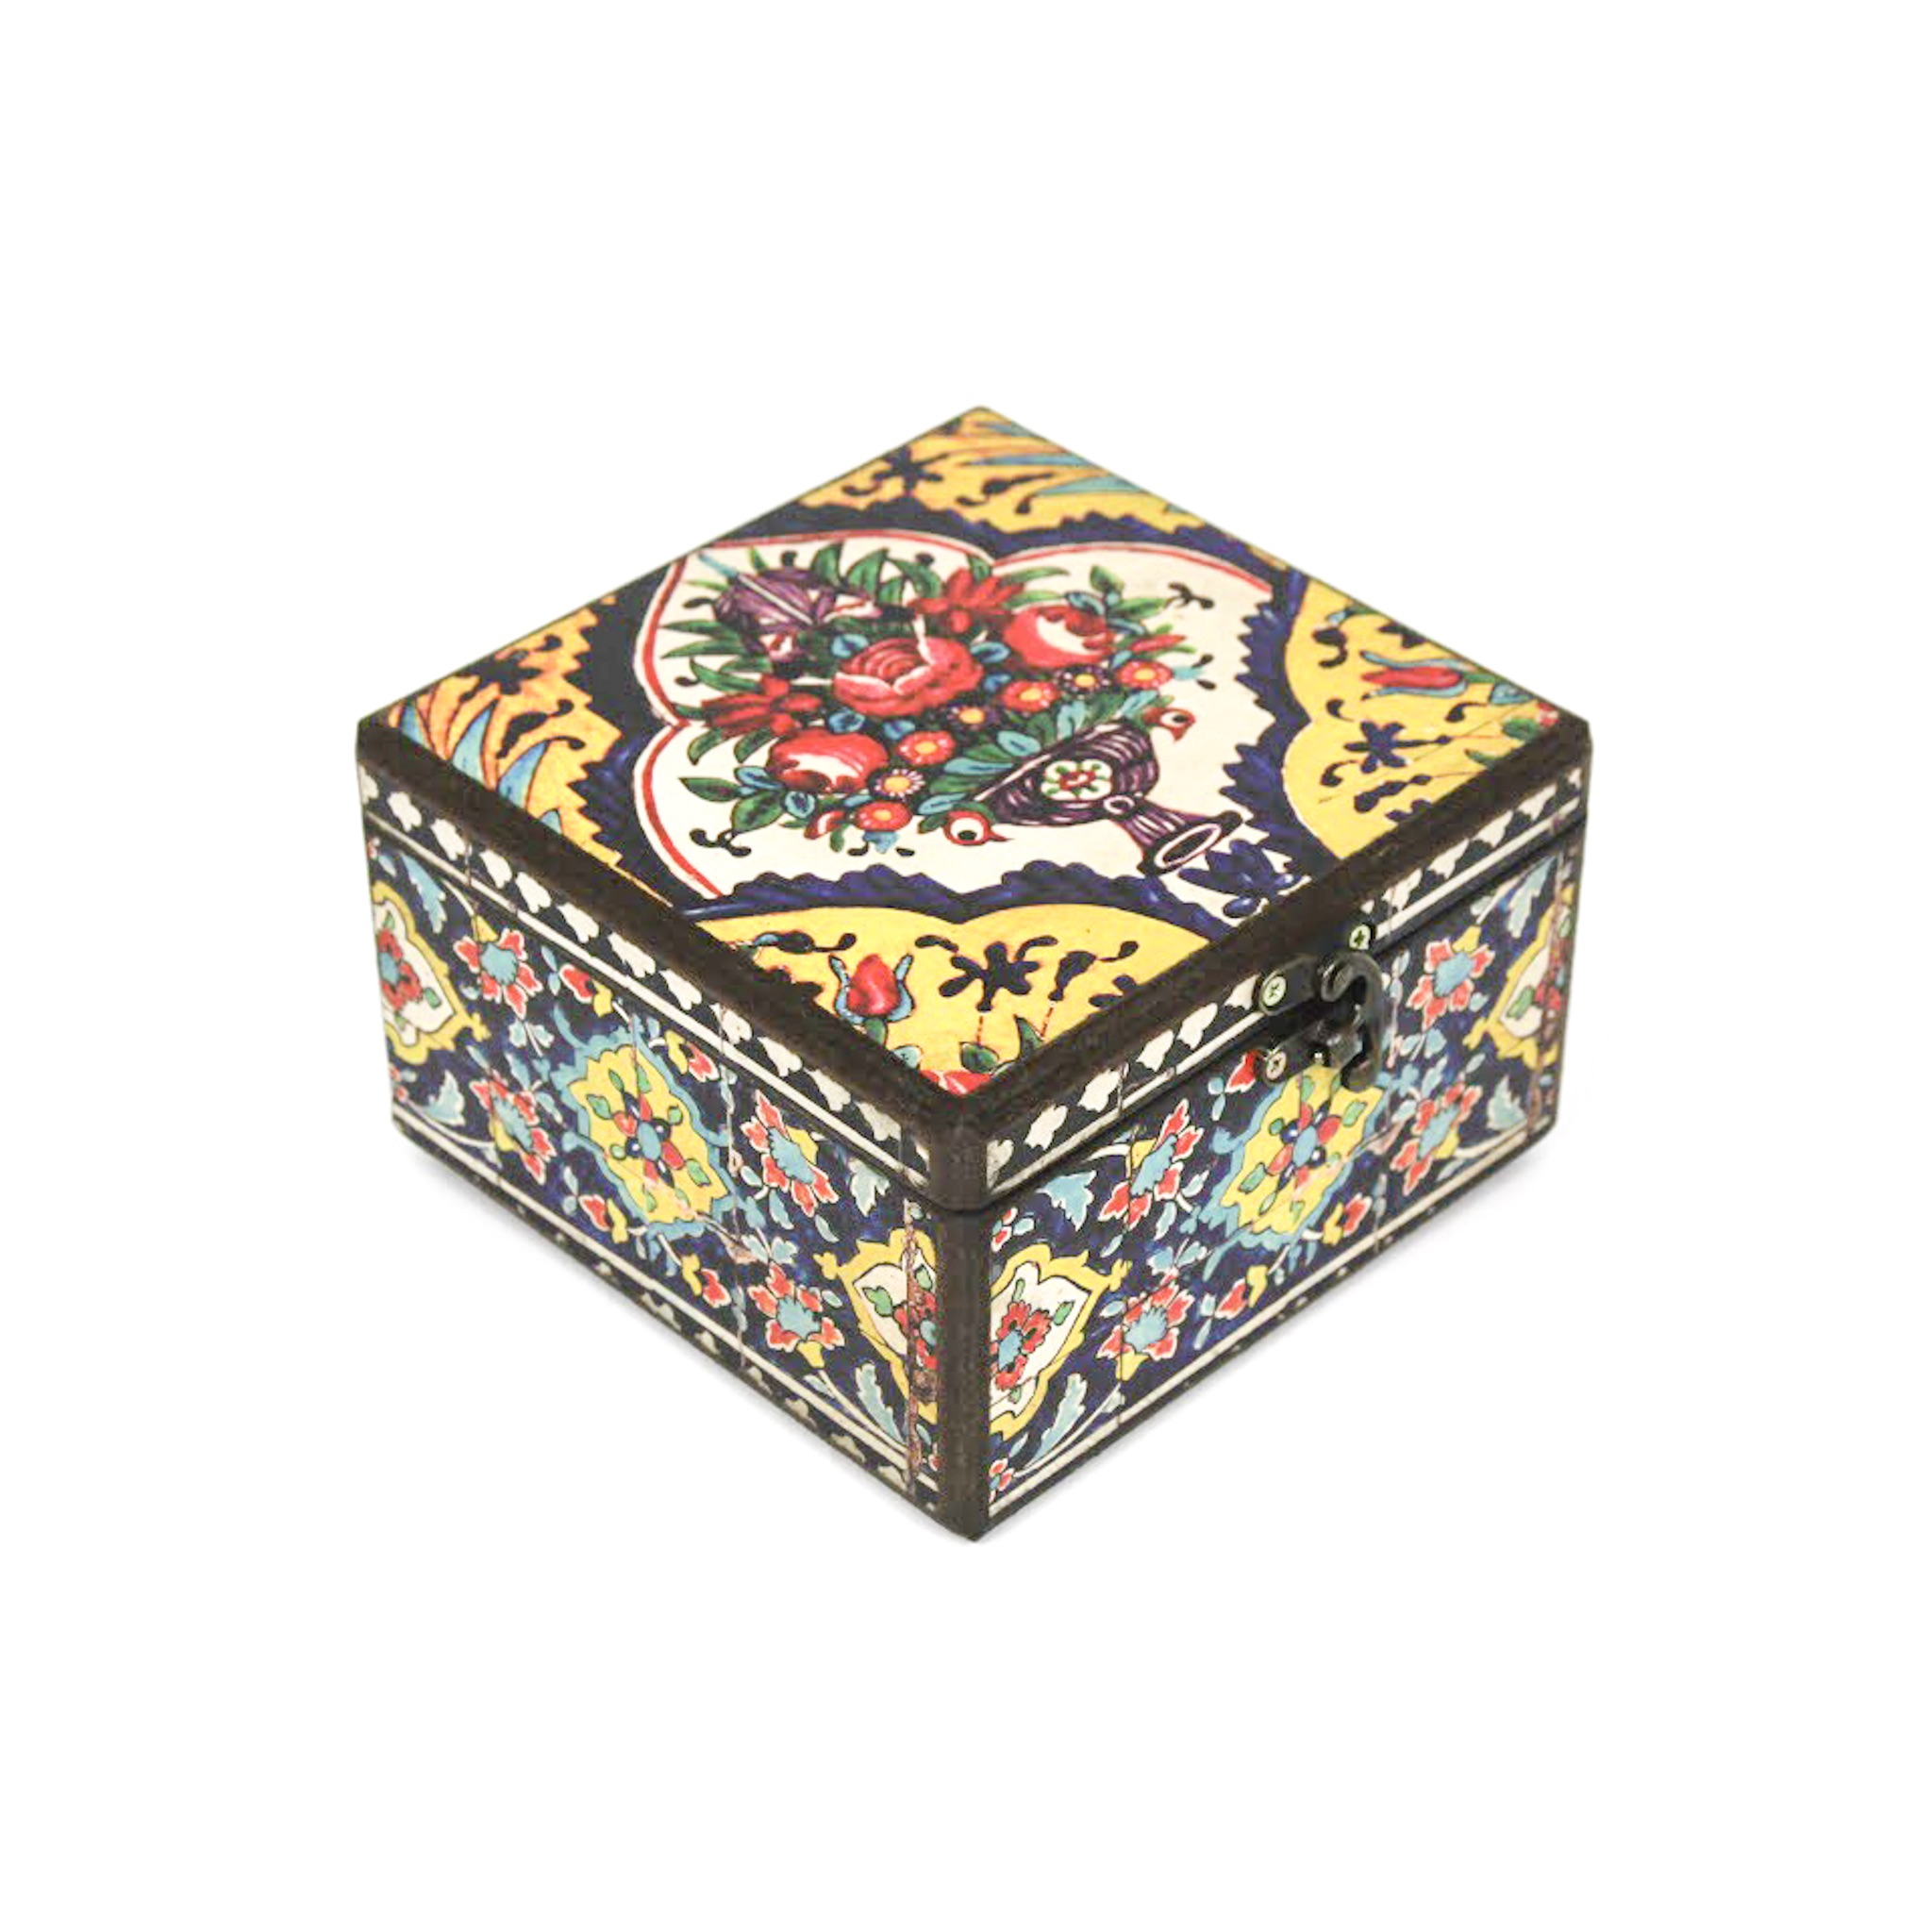 Wooden tea box with Iranian tile patterns code 04 ( available in 3 sizes)